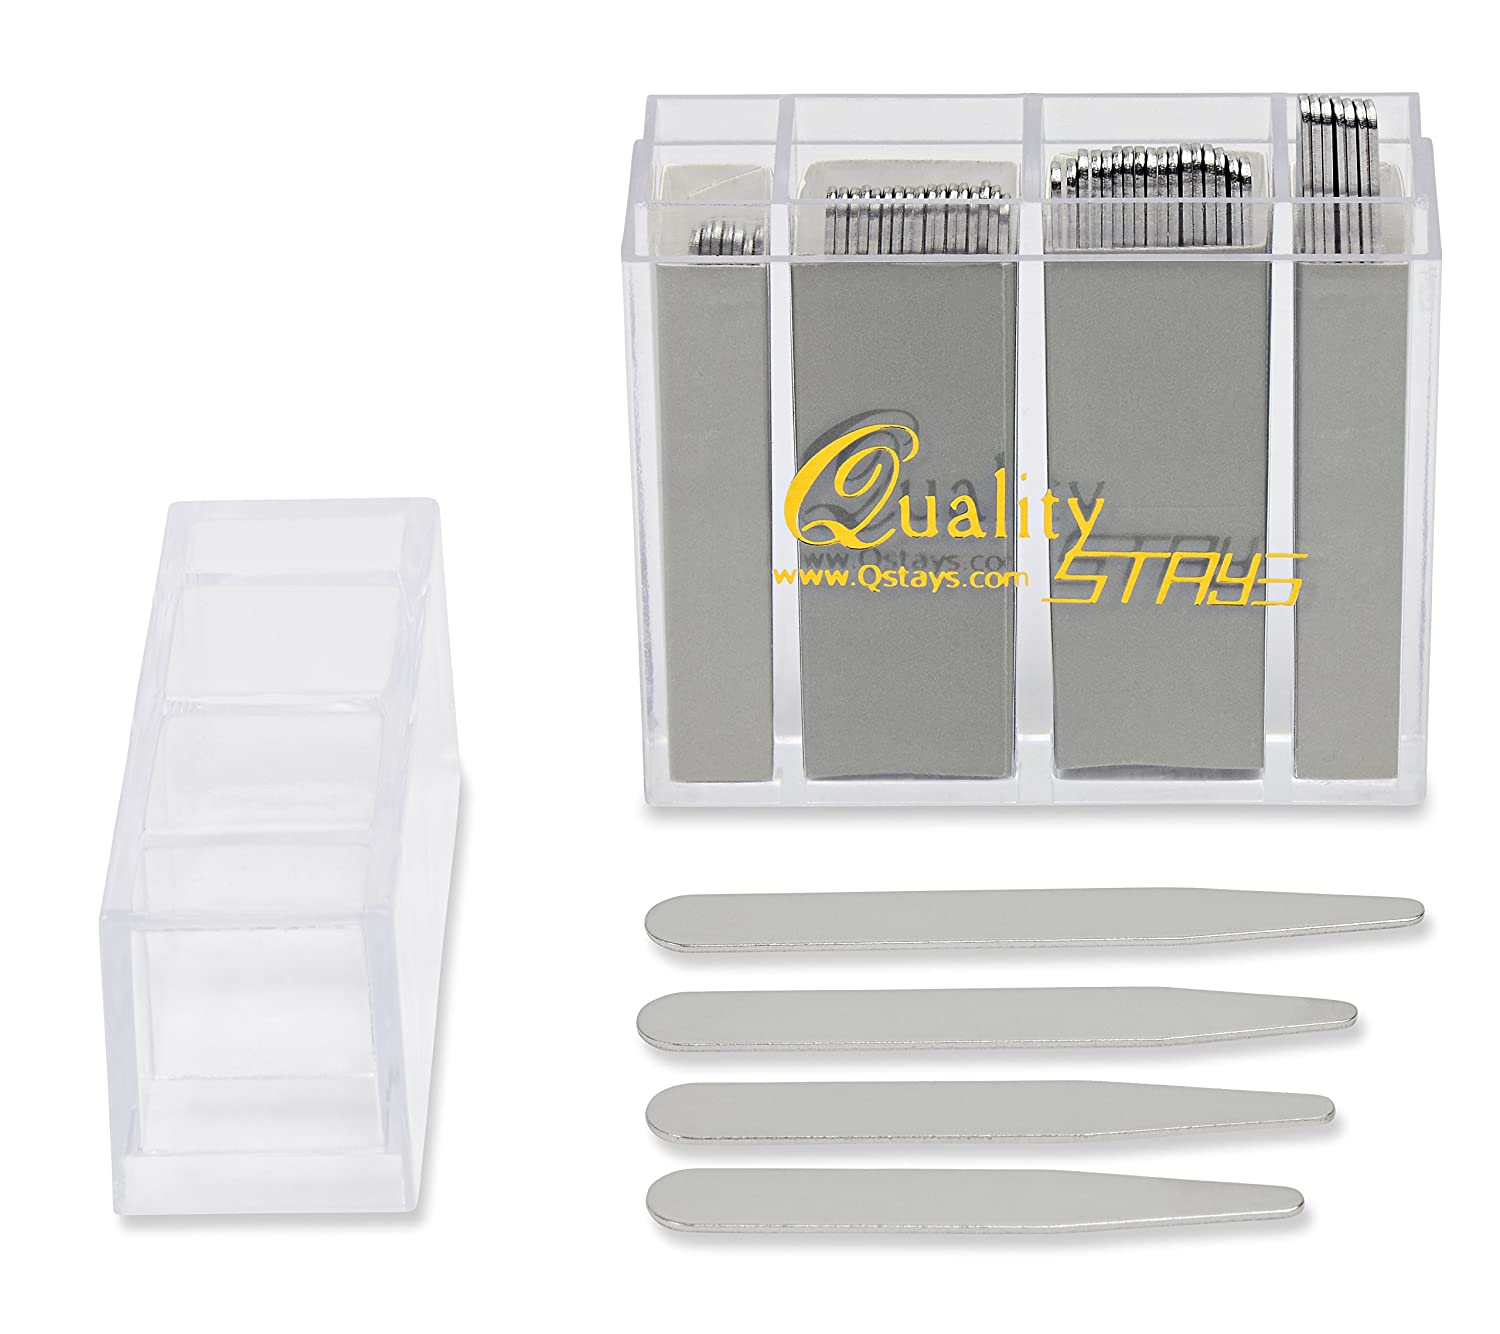 52 Top Quality Metal Collar Stays (Mixed Sizes) in a Divided Box CHIOINS